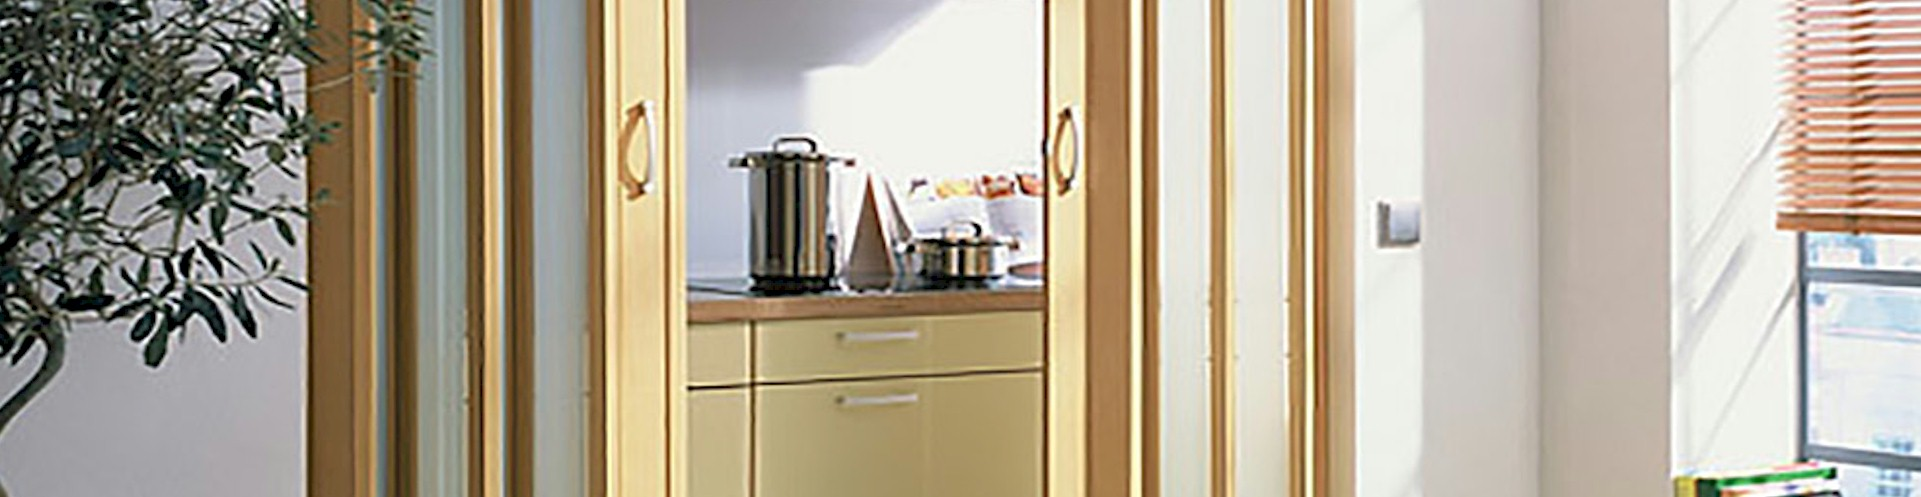 Folding Concertina Doors: & Suppliers of Internal Folding Concertina Doors | Order Online at ... Pezcame.Com